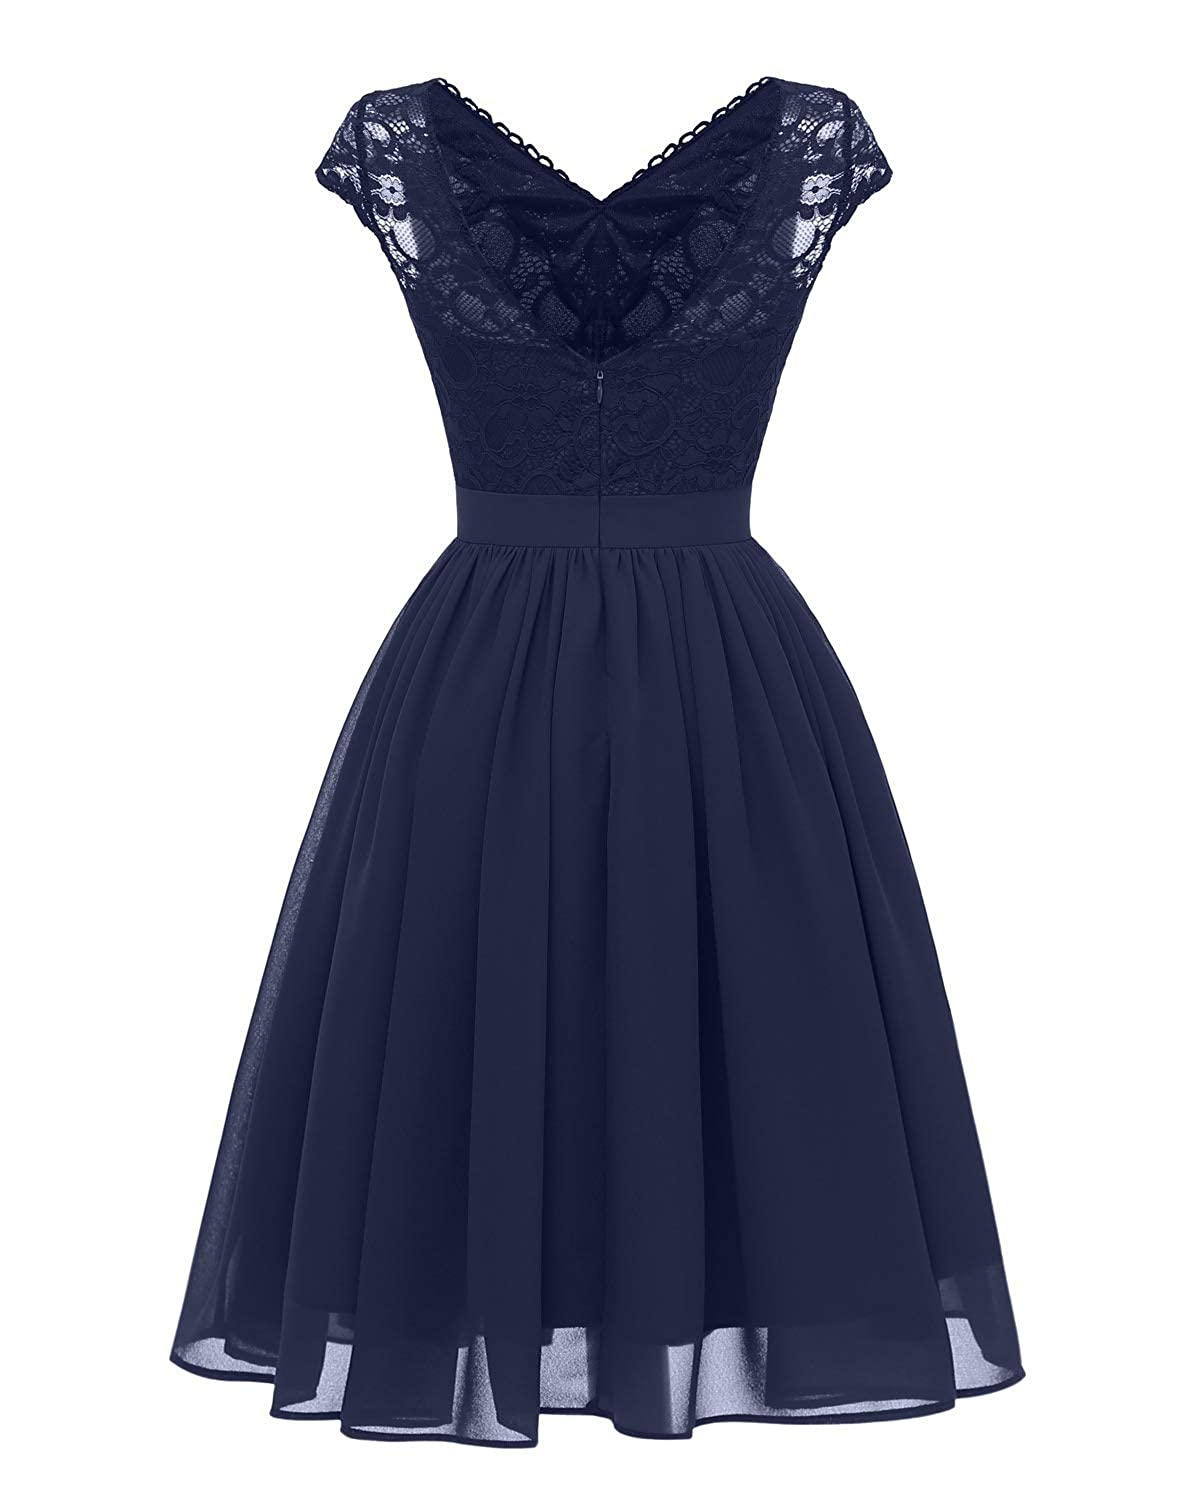 Navy bluee Zooka Dress Women Summer Solid Short Sleeve Lace Hollow Out Elegant Casual Party Dress